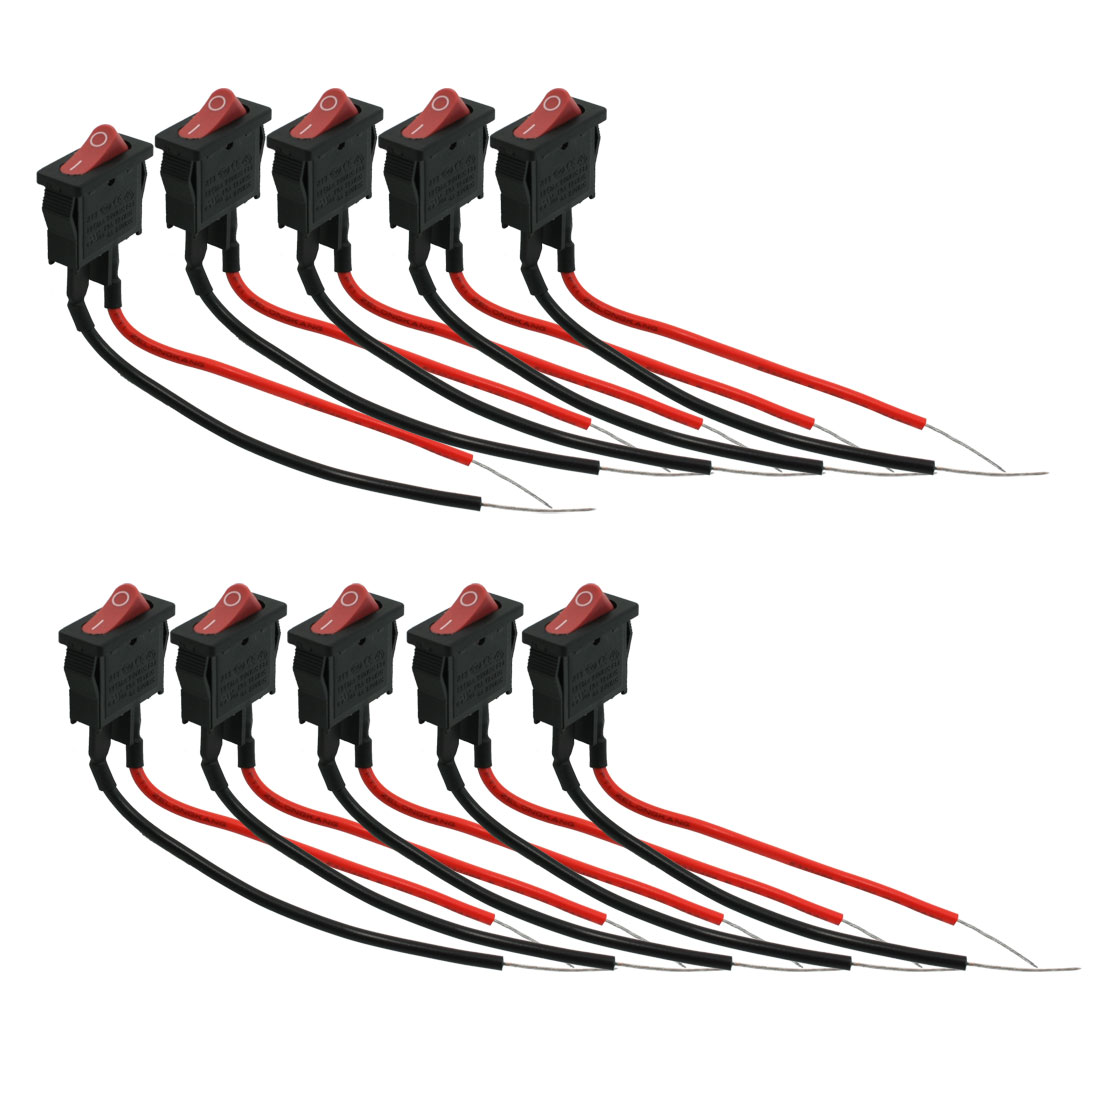 10 Pcs Panel Mounting 2-Wire Single Pole Single Throw Car Rocker Switch AC 125V AC 250V 4A